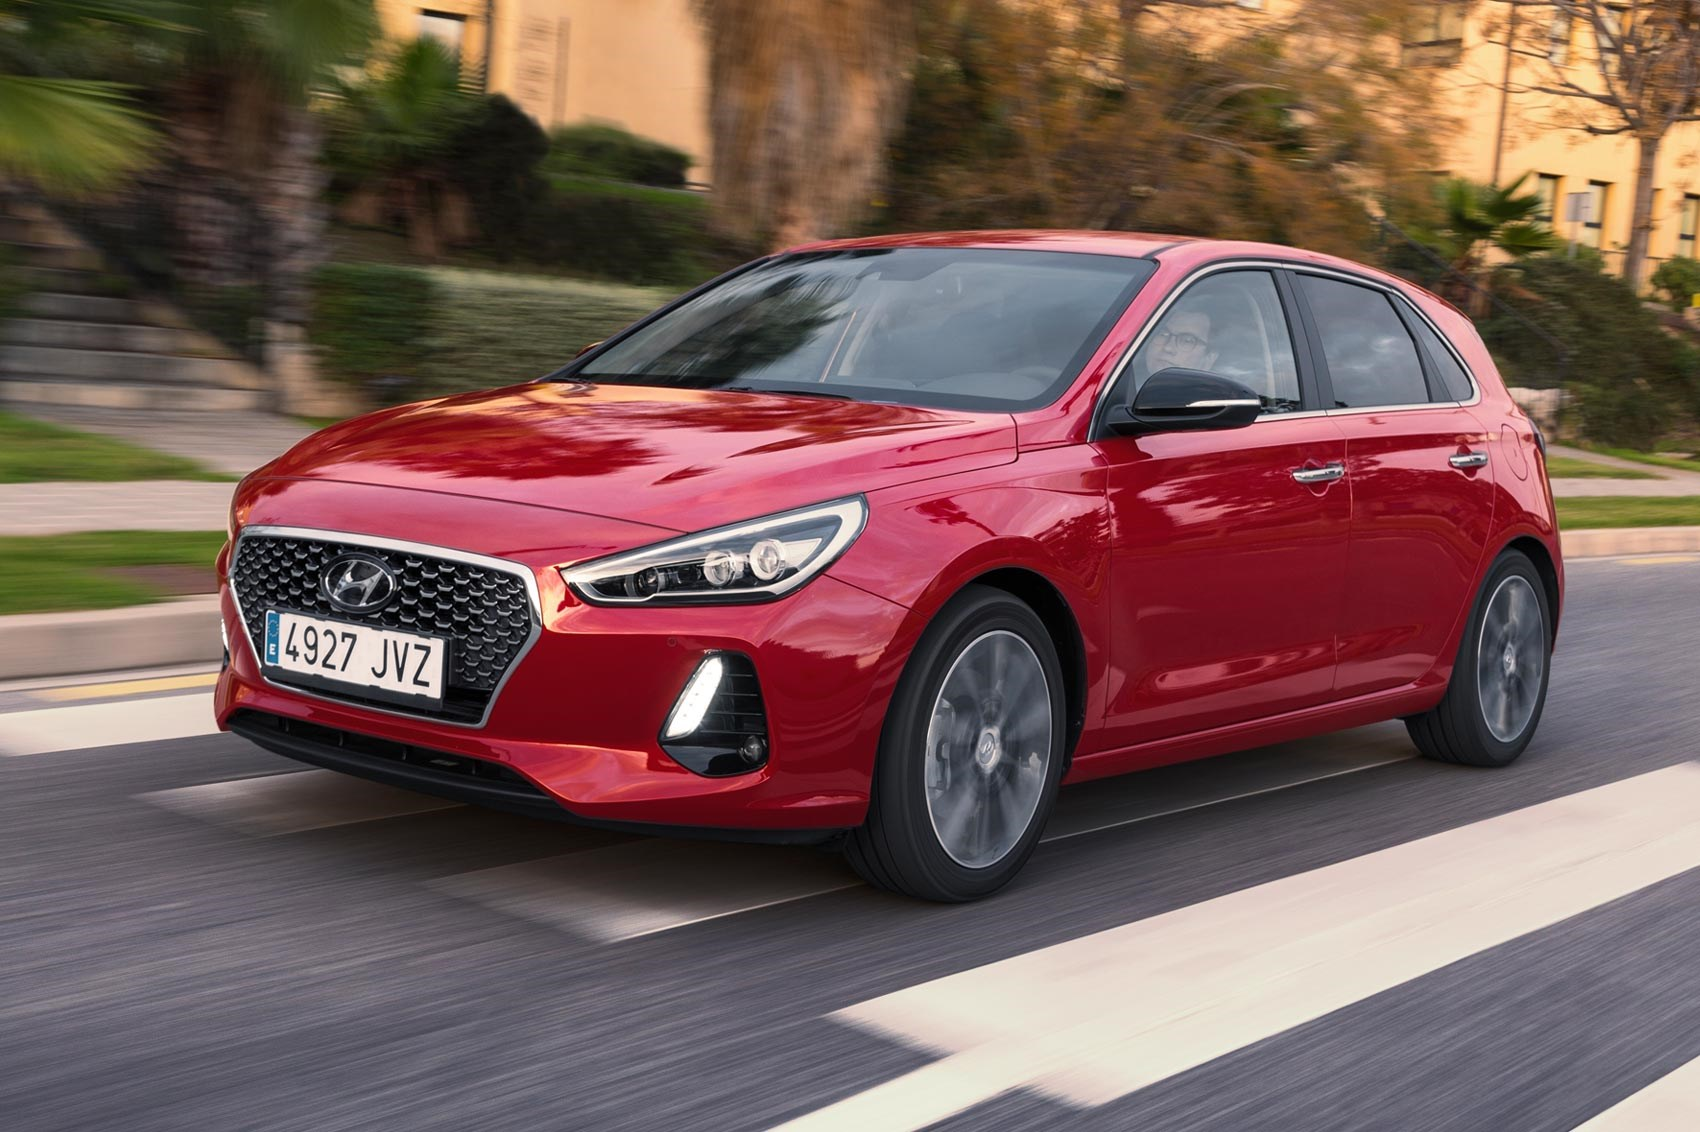 Honda Car Lease >> Hyundai i30 1.4 T-GDi 140PS Premium (2017) review | CAR ...